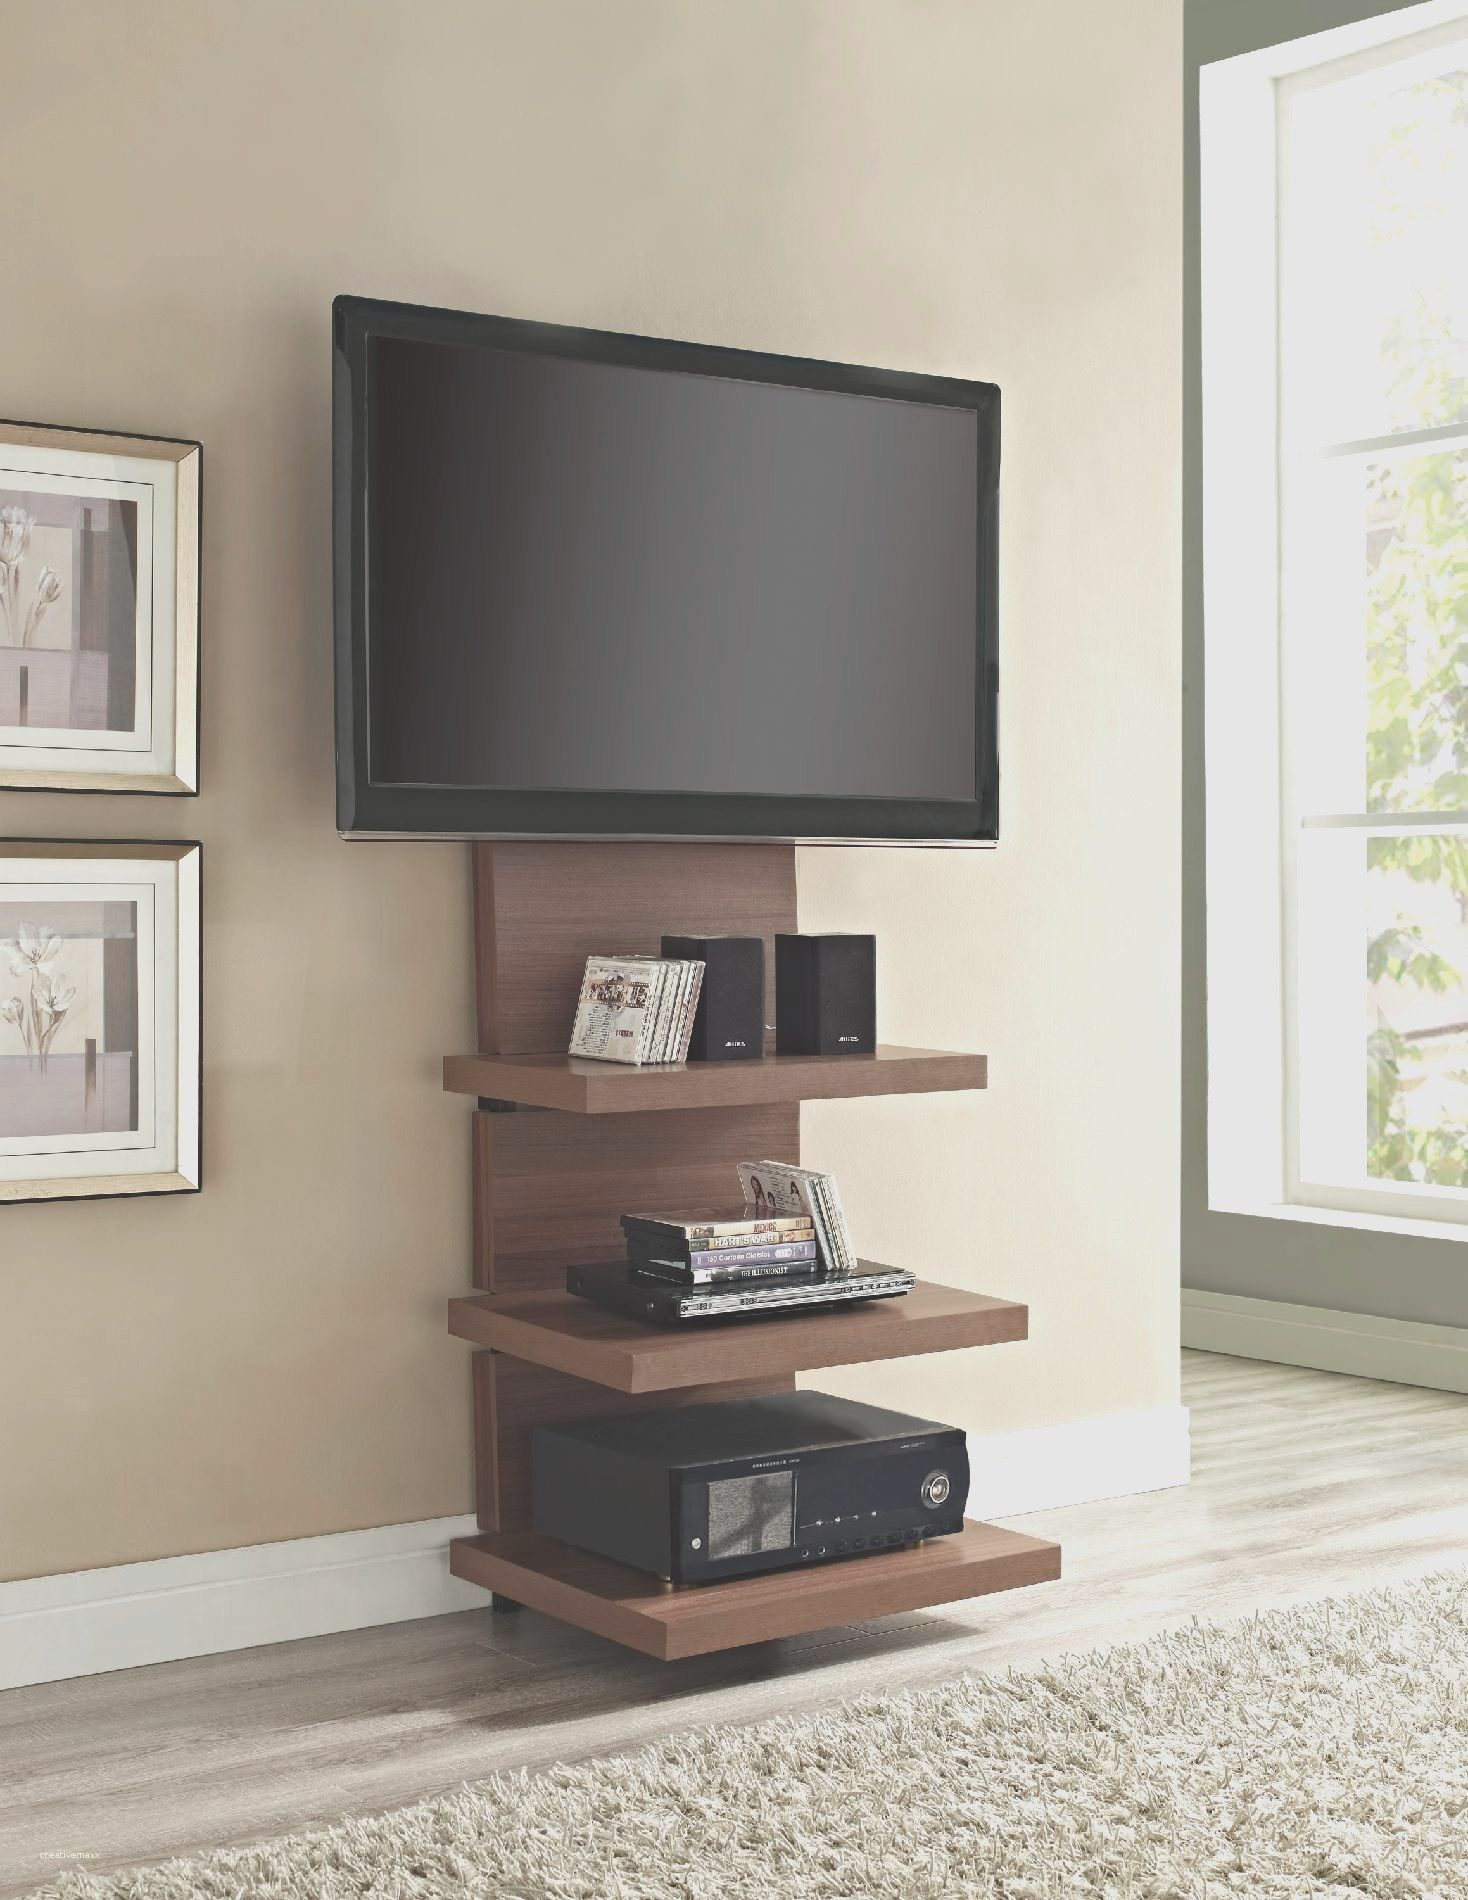 30 Beautiful Diy Tv Stand Ideas For Your Room Interior Modern Tv